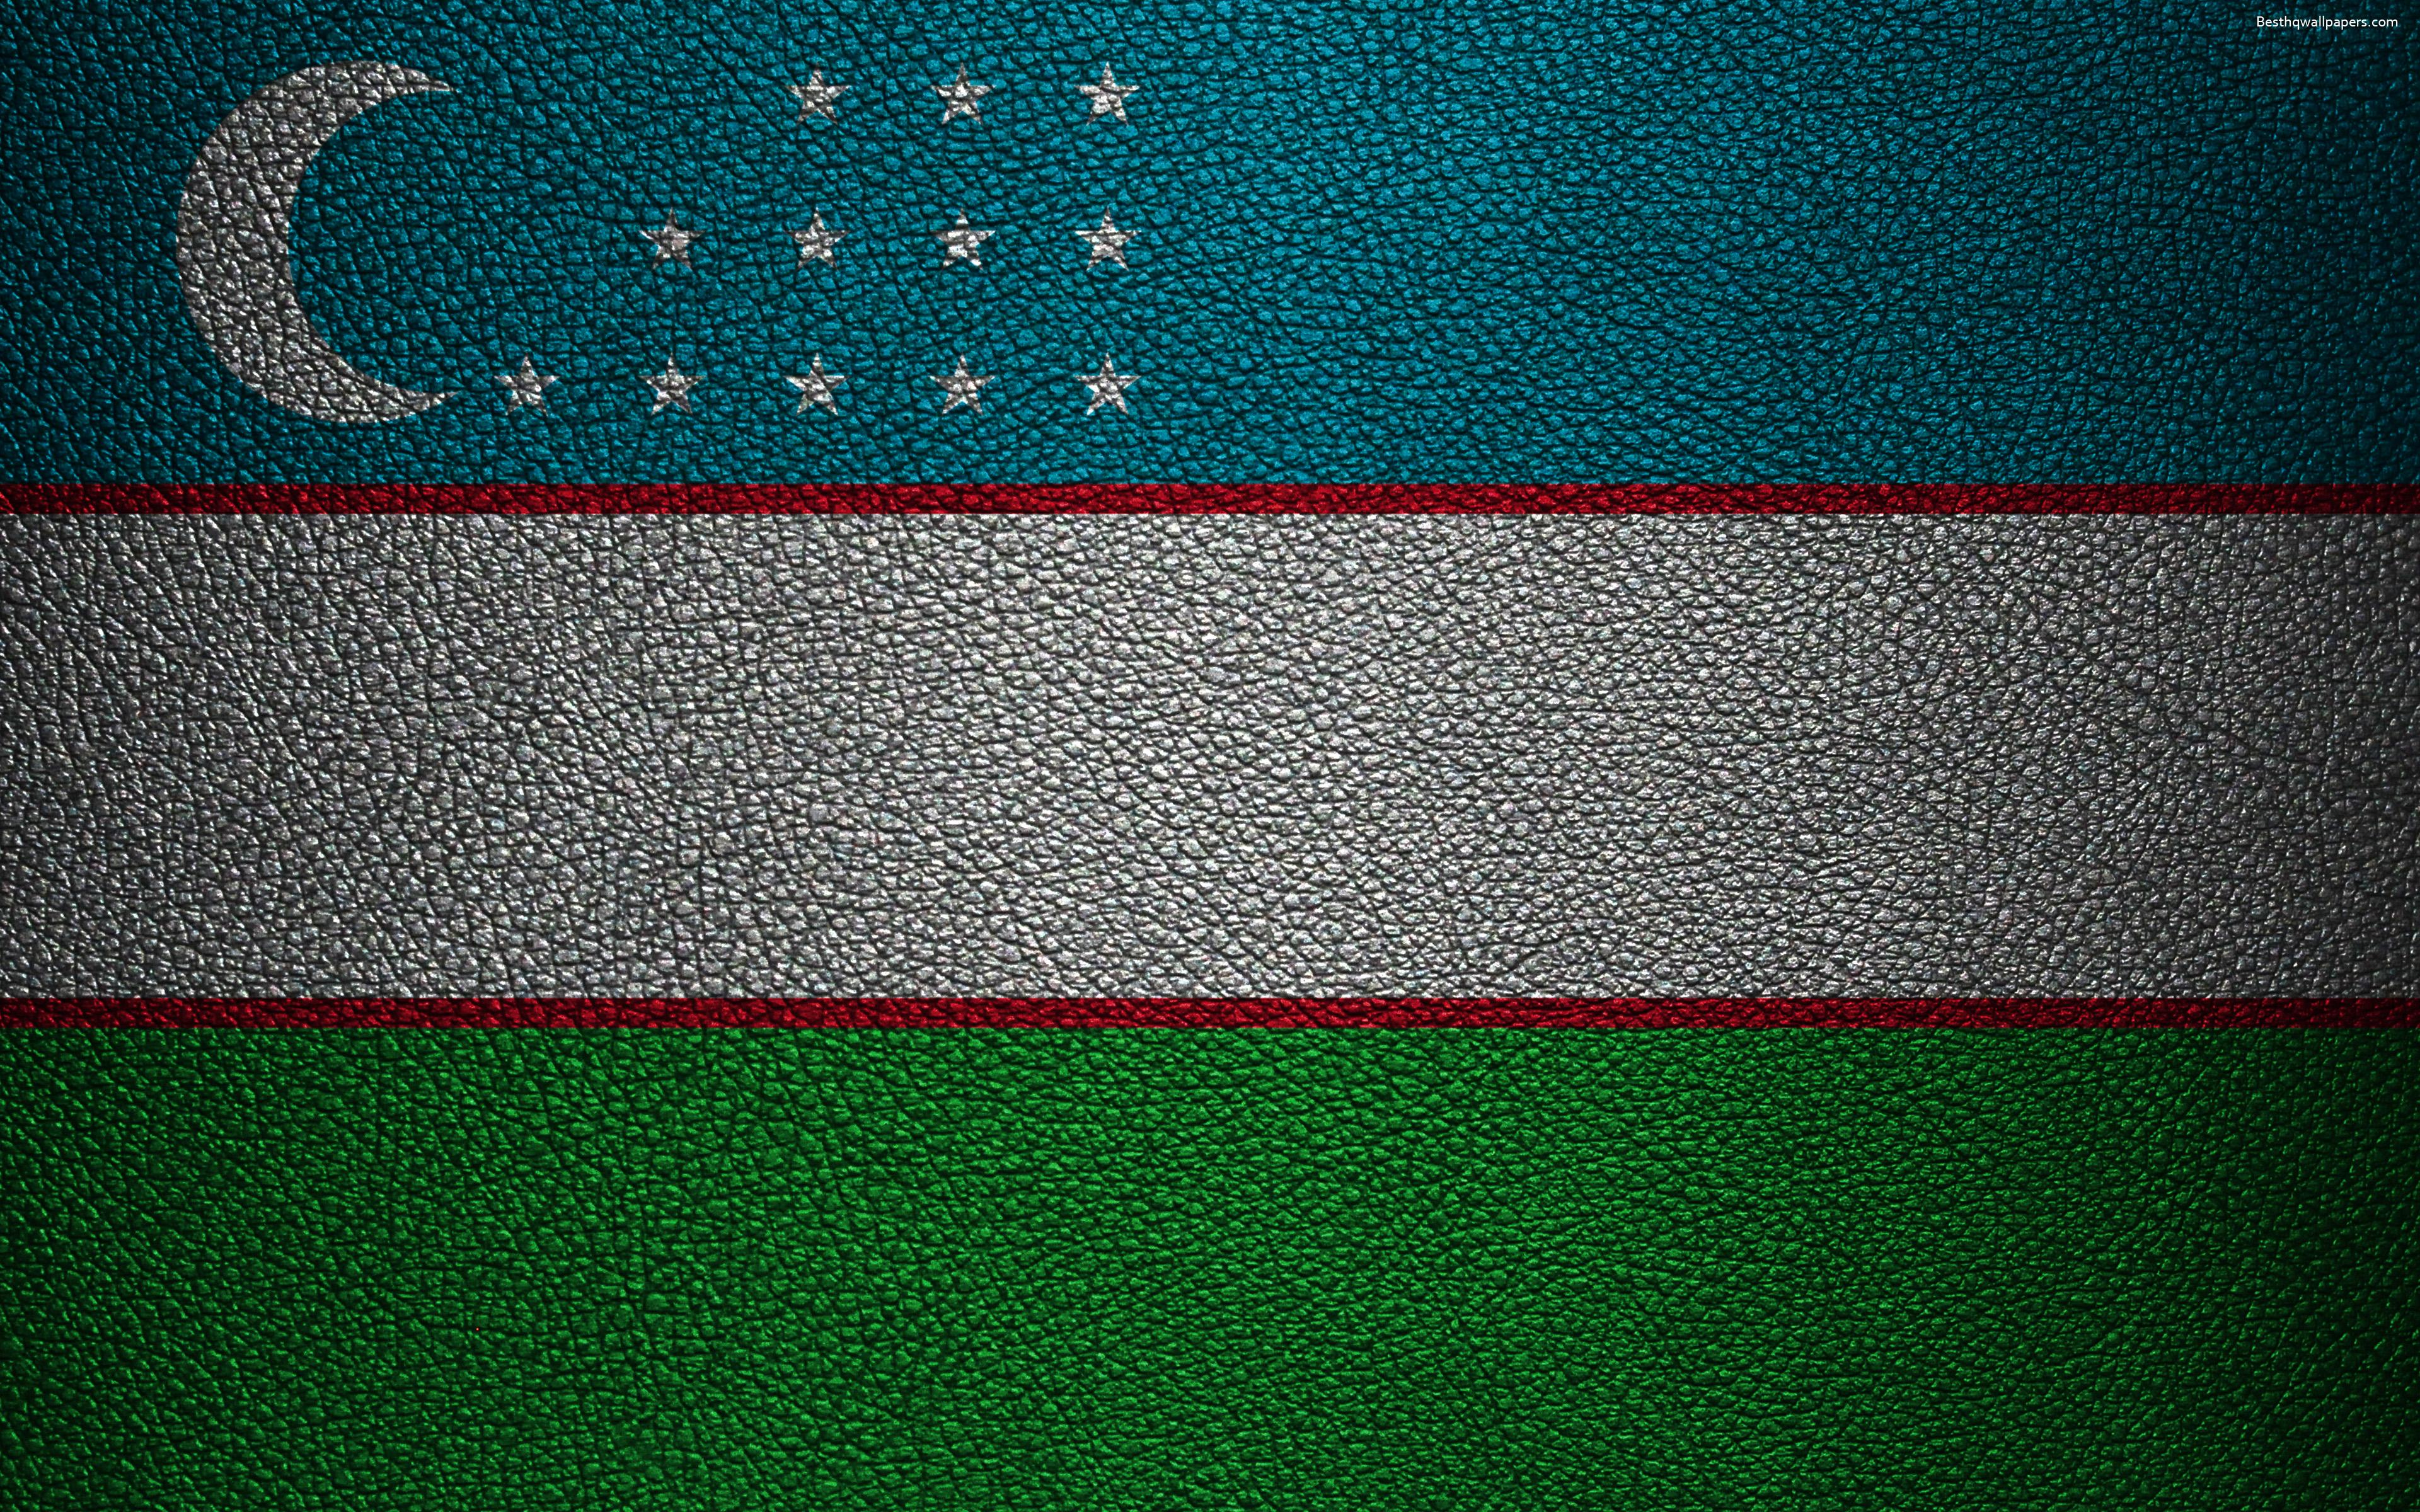 Download wallpapers Flag of Uzbekistan, 4k, leather texture, Uzbek